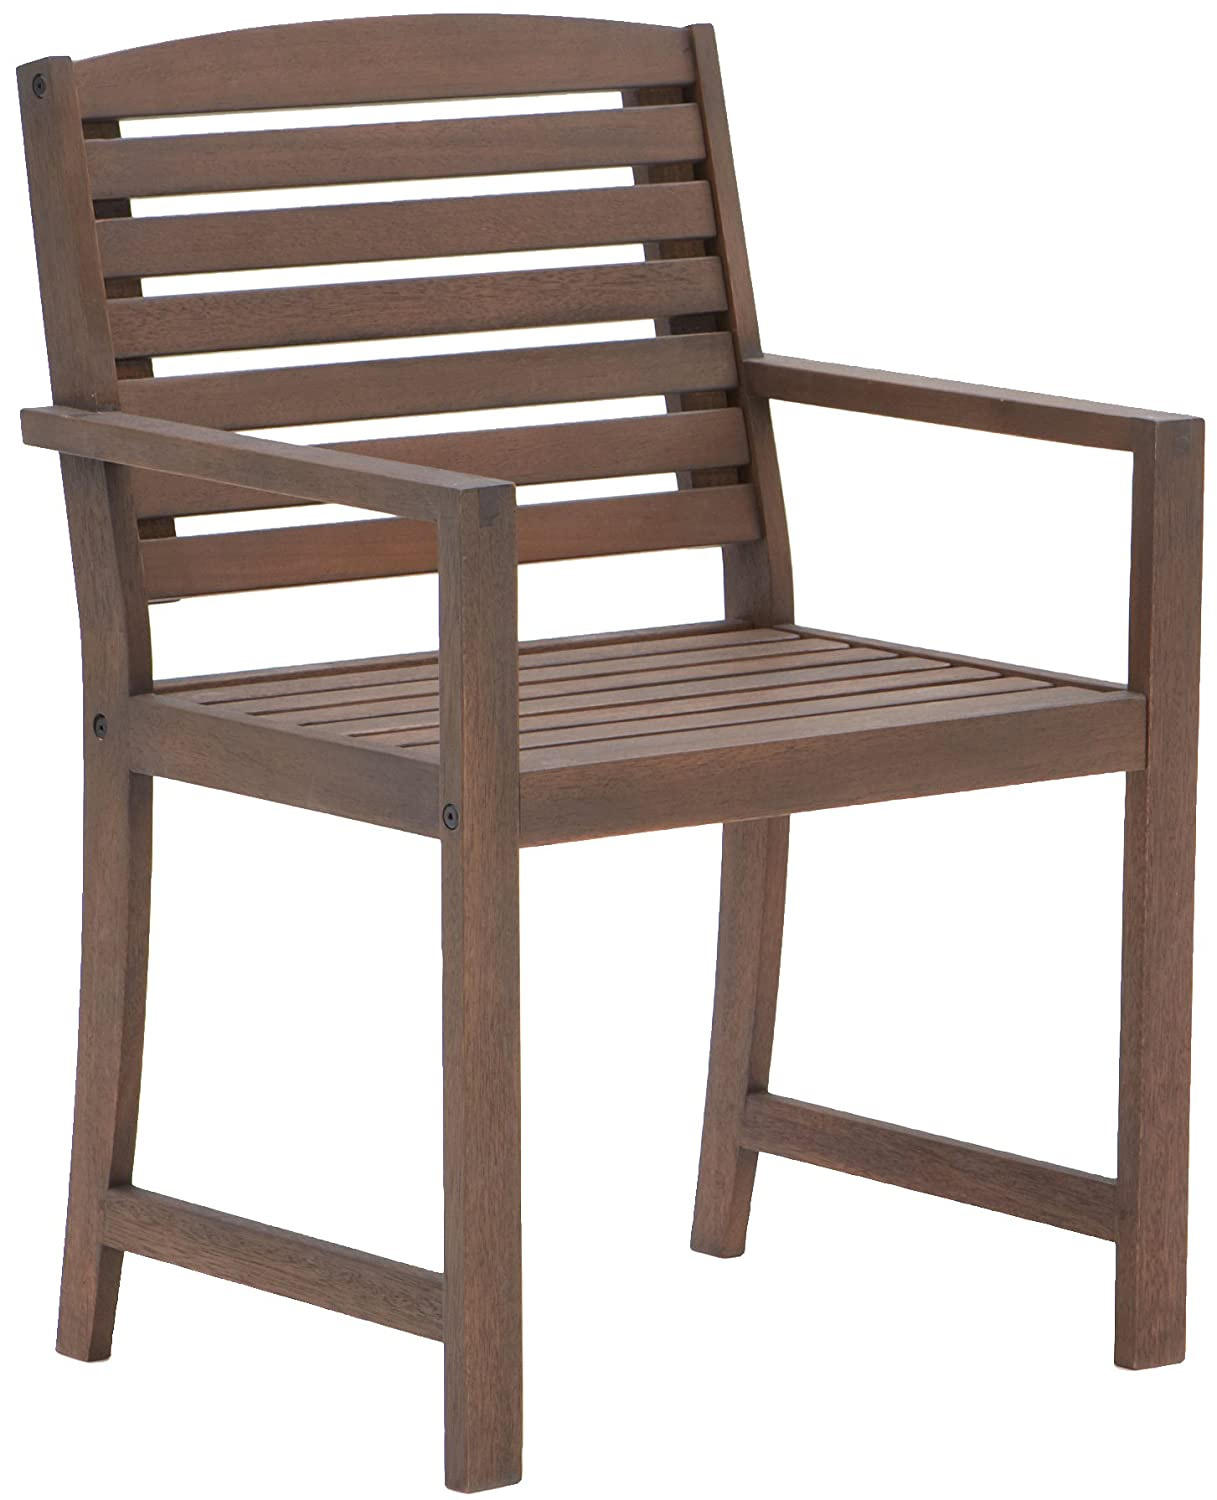 Amazon.com : Strathwood Vashon Hardwood Dining Arm Chair, Set of 2 : Patio  Dining Chairs : Garden & Outdoor